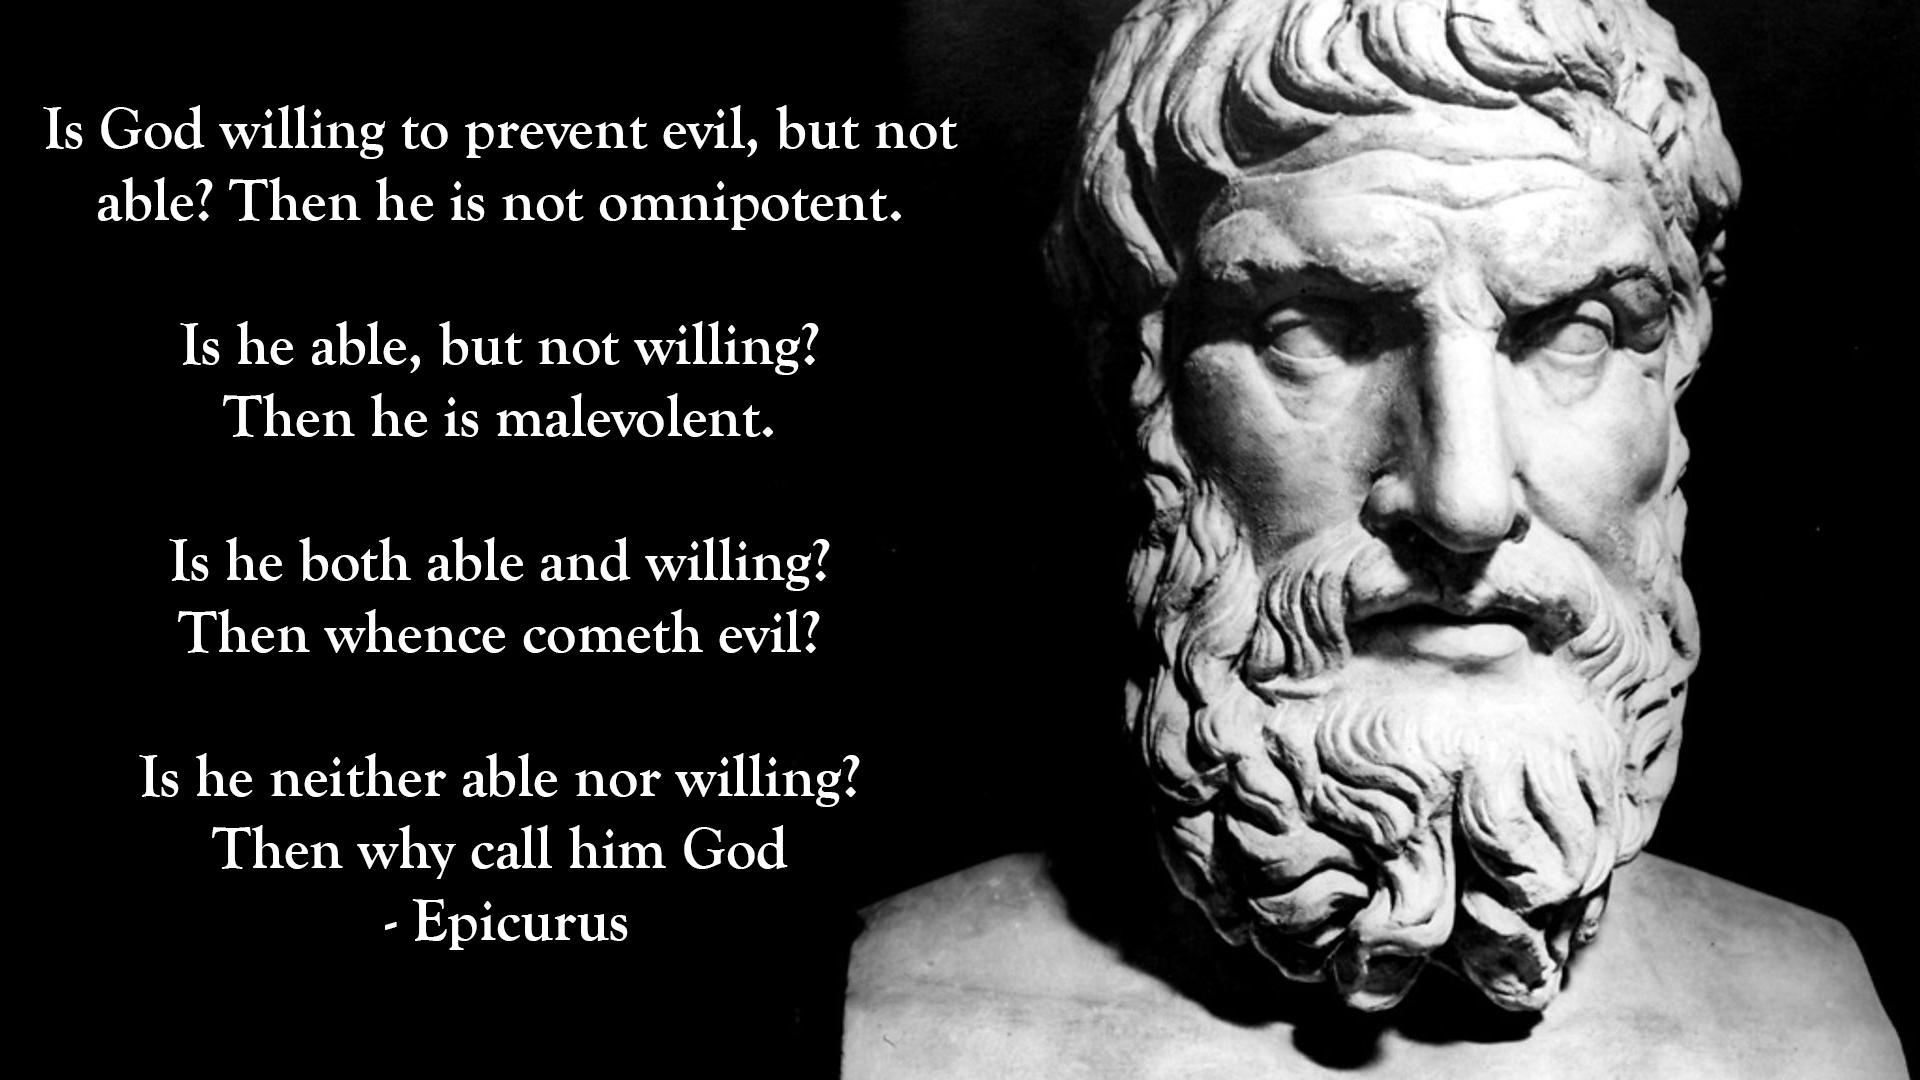 """Is God willing to prevent evil, but not able? Then he is not omnipotent…"" Epicurus [1920 × 1080]"